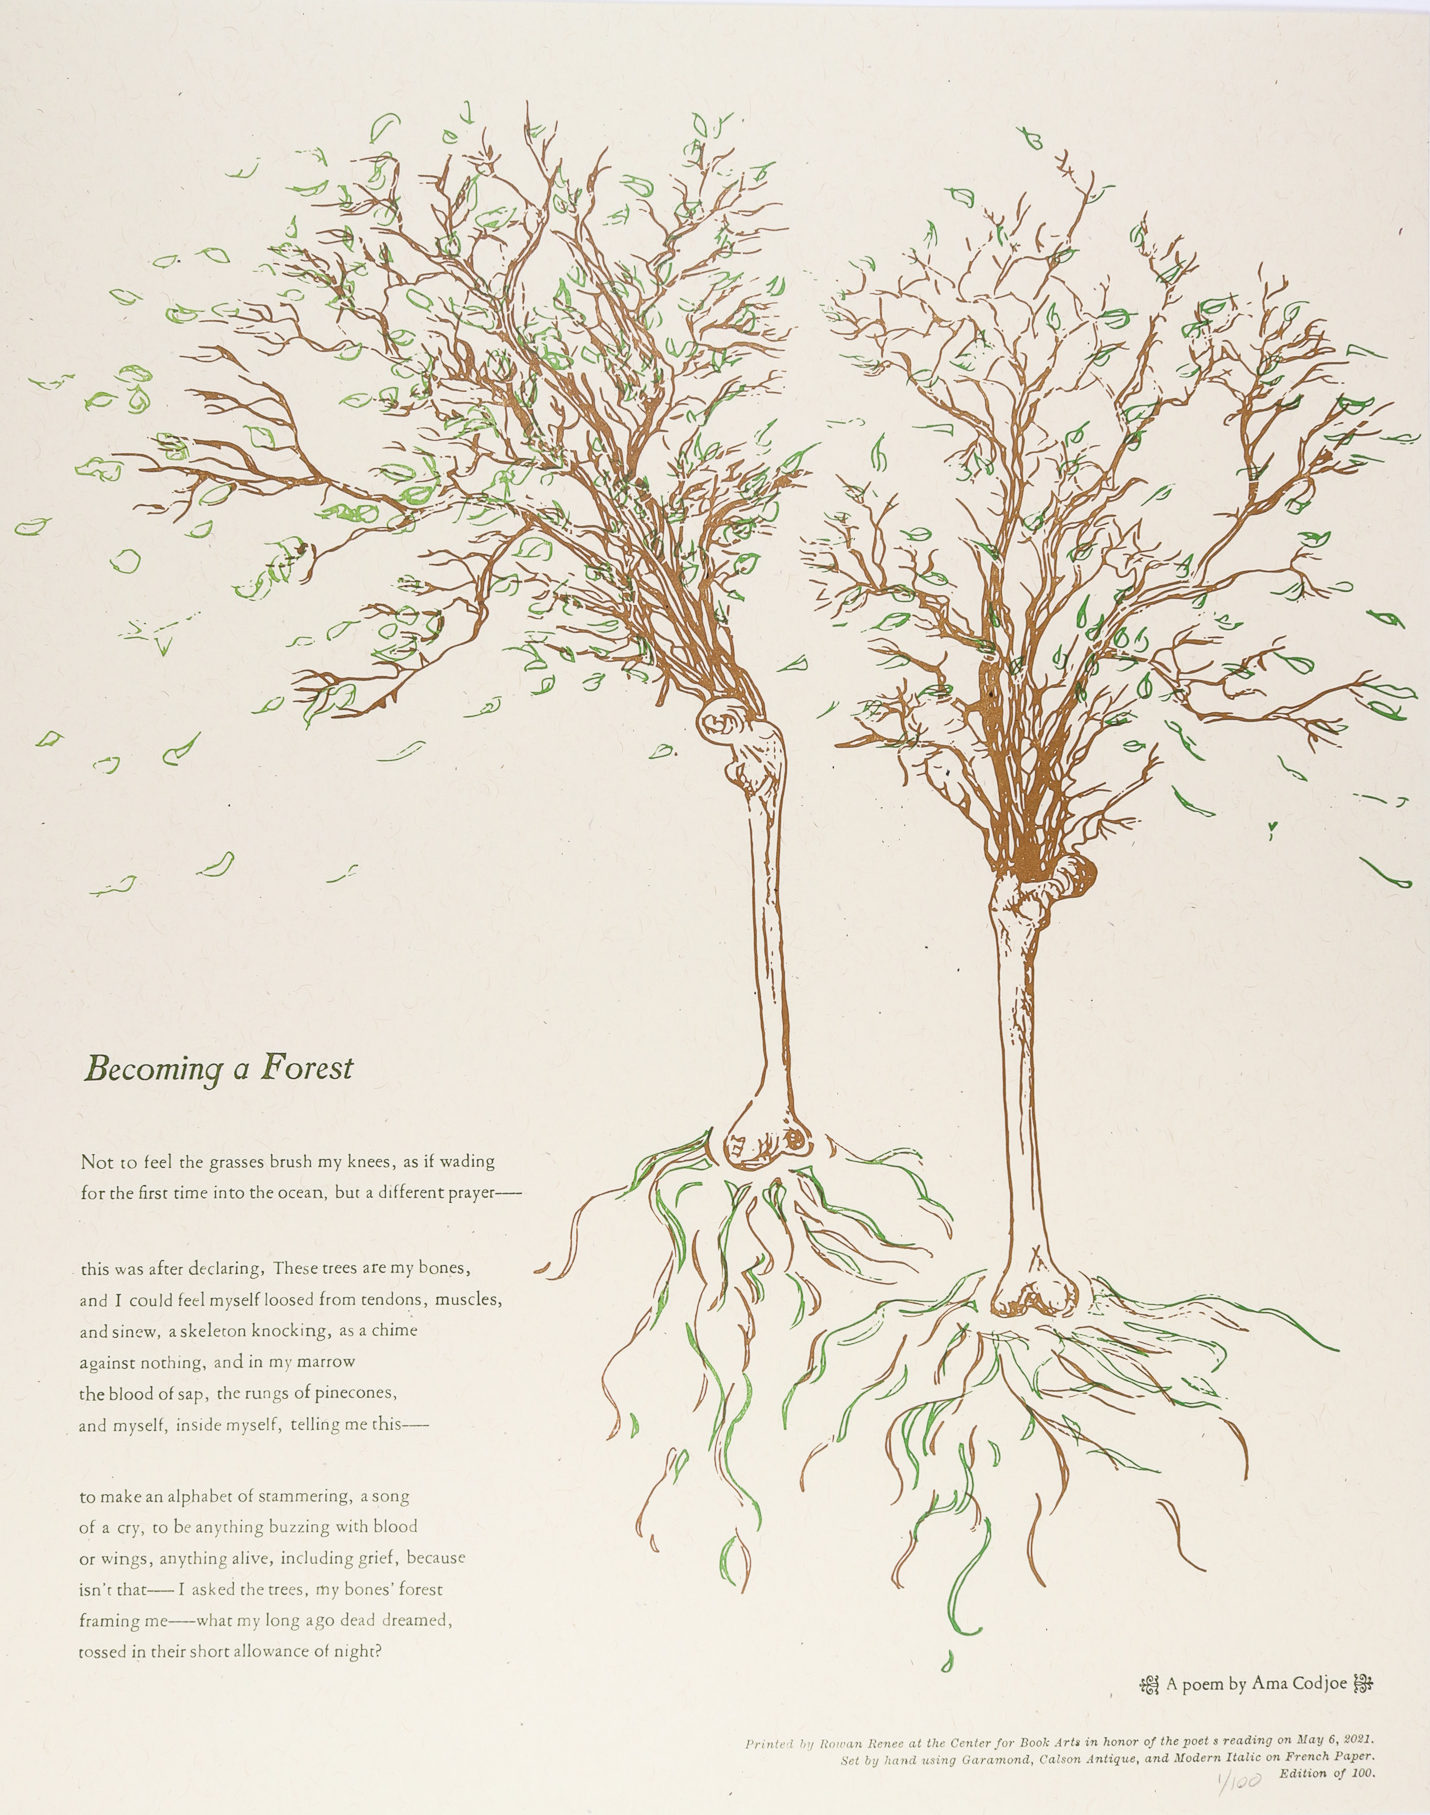 Broadside with bone trees and the poem on the bottom lefthand side of the page.